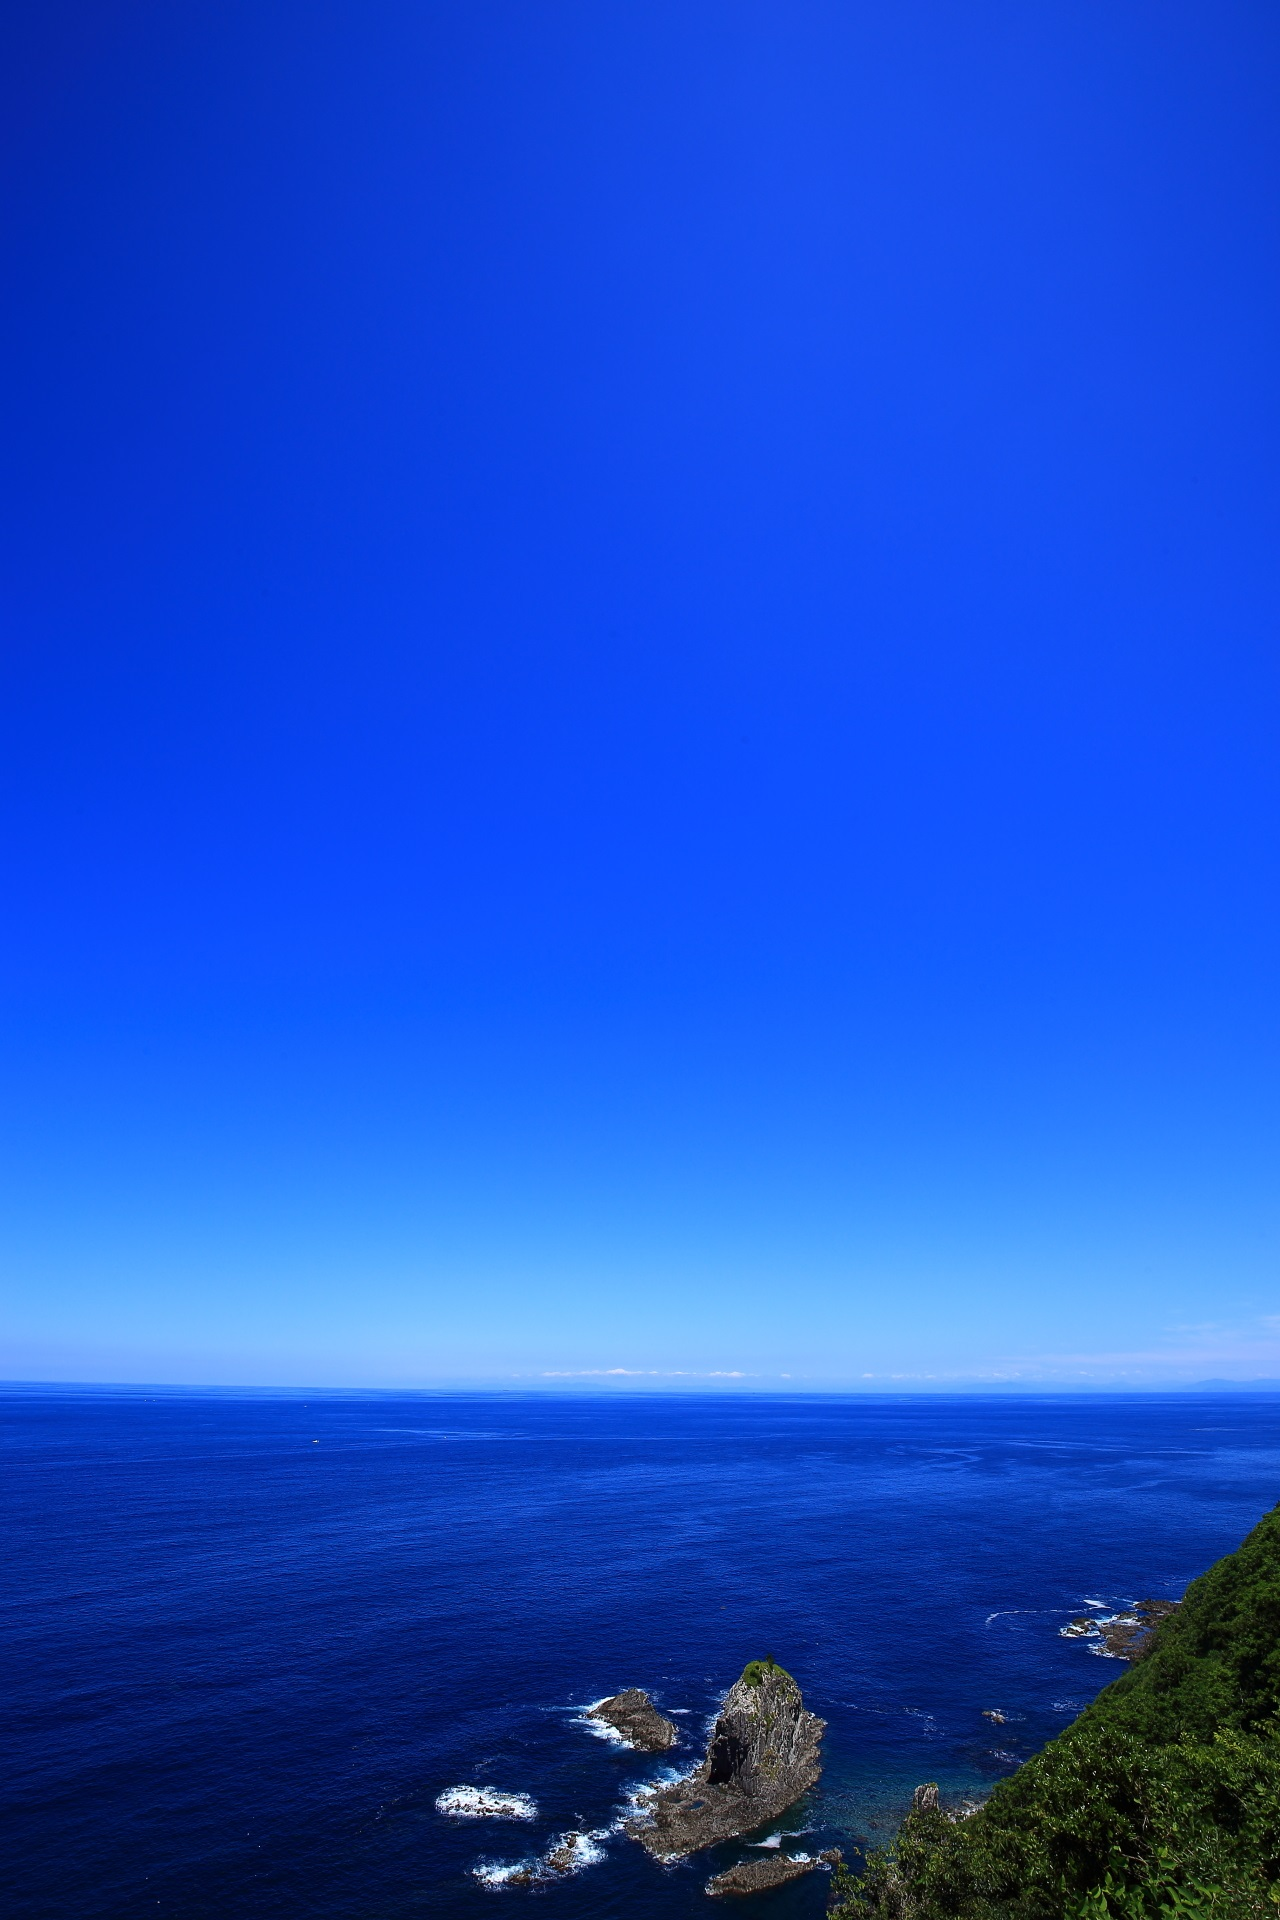 Blue sky and blue sea to watch from Cape-Kyoga-Misaki in Kyotango